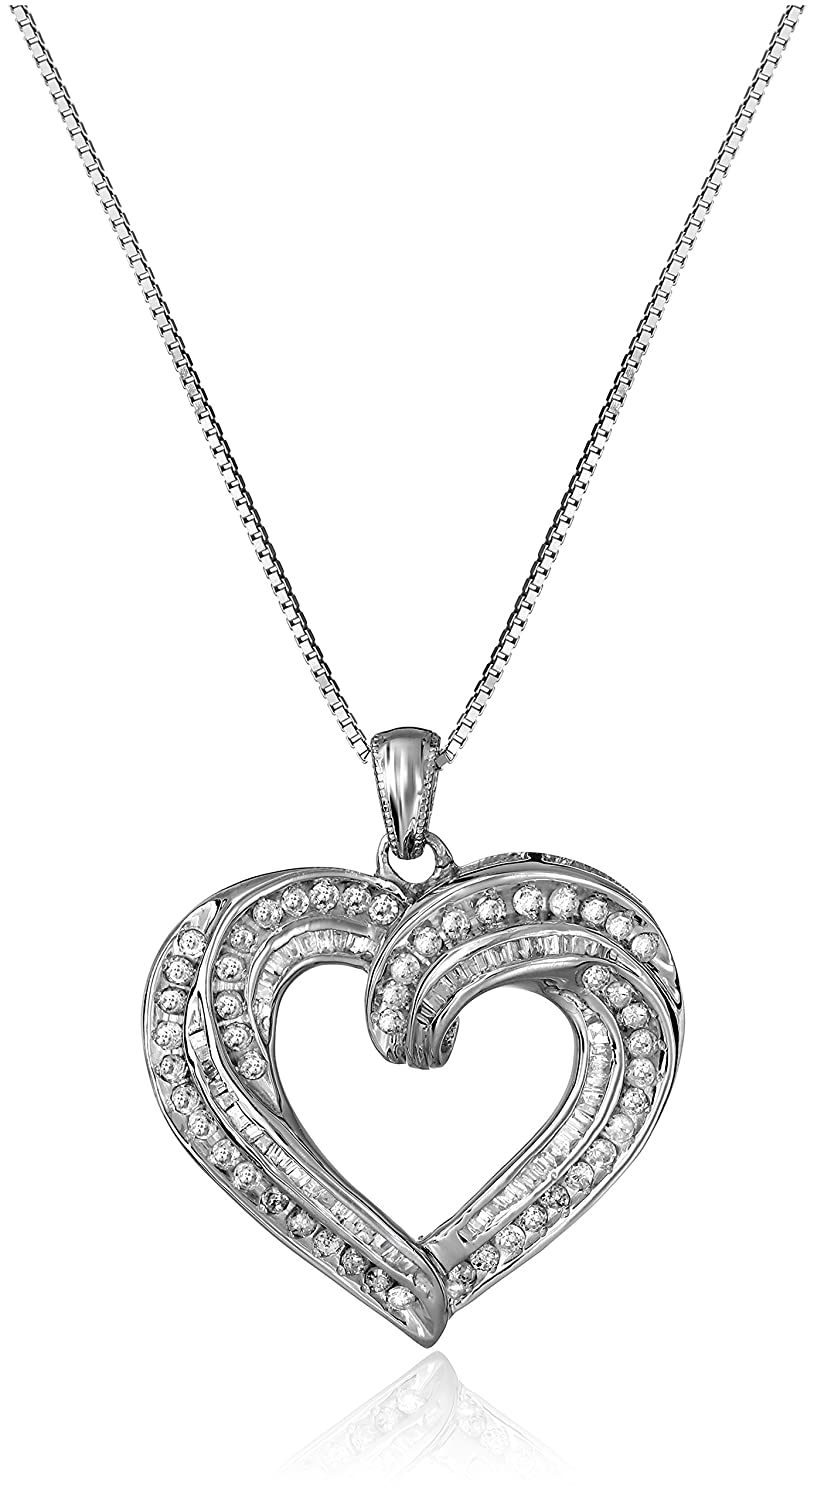 Amazon sterling silver and diamond heart pendant necklace 1 amazon sterling silver and diamond heart pendant necklace 1 cttw i j color i3 clarity 18 jewelry mozeypictures Choice Image